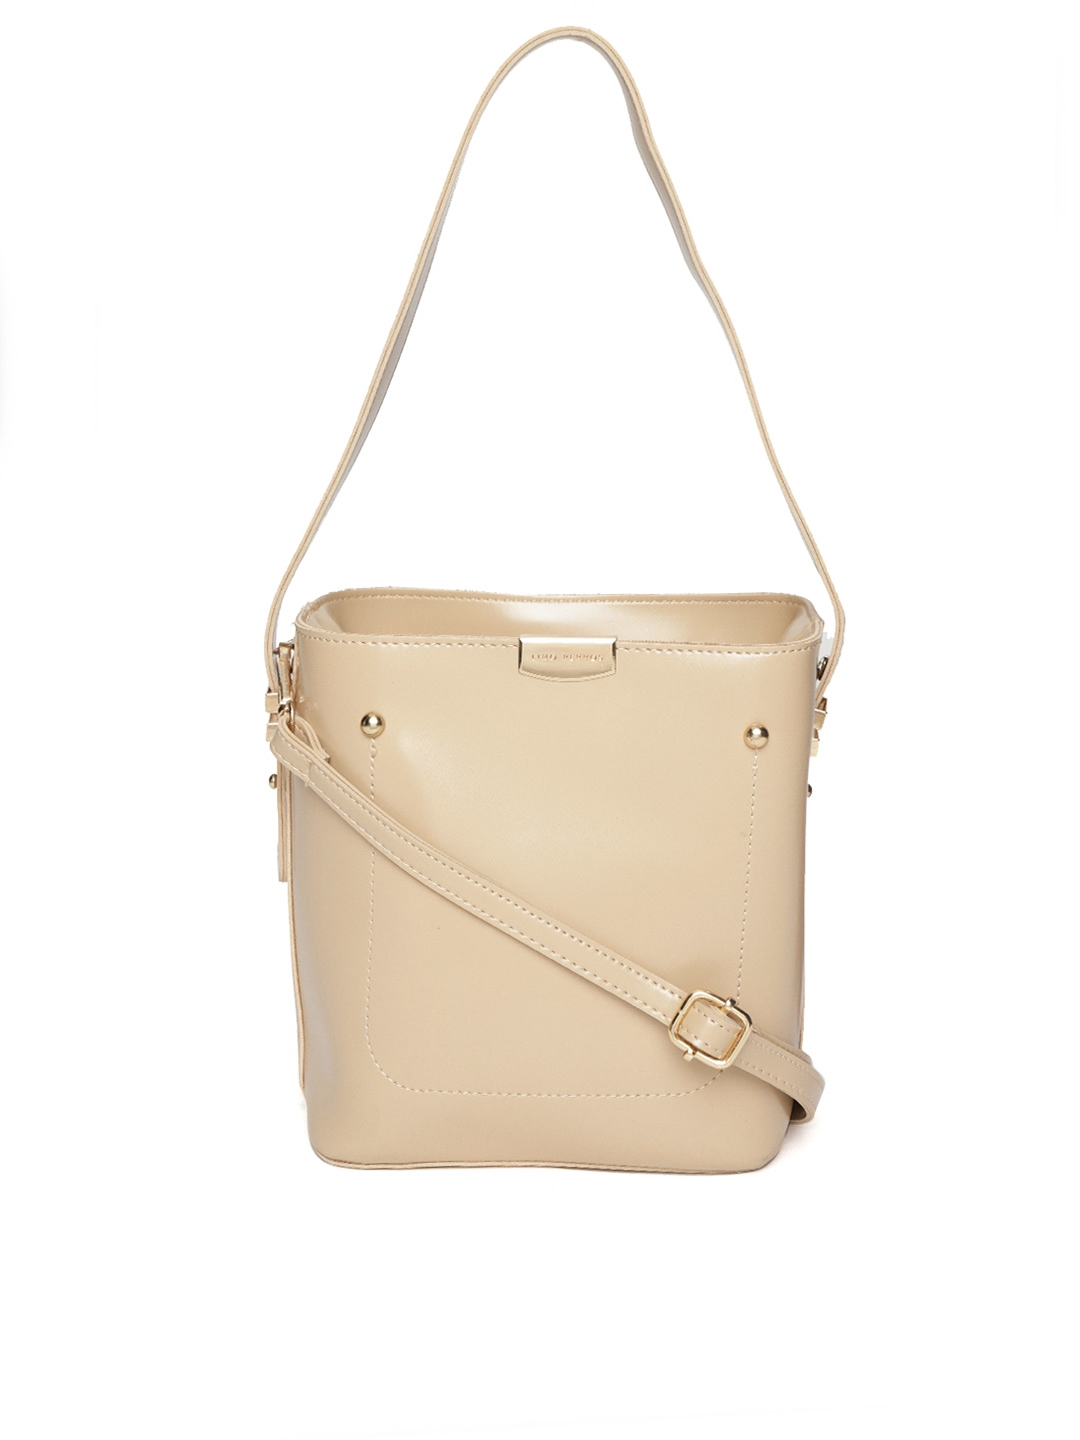 283cbadd562 Lisa Hayden for Lino Perros Beige Solid Handheld Bag with Detachable Sling  Strap